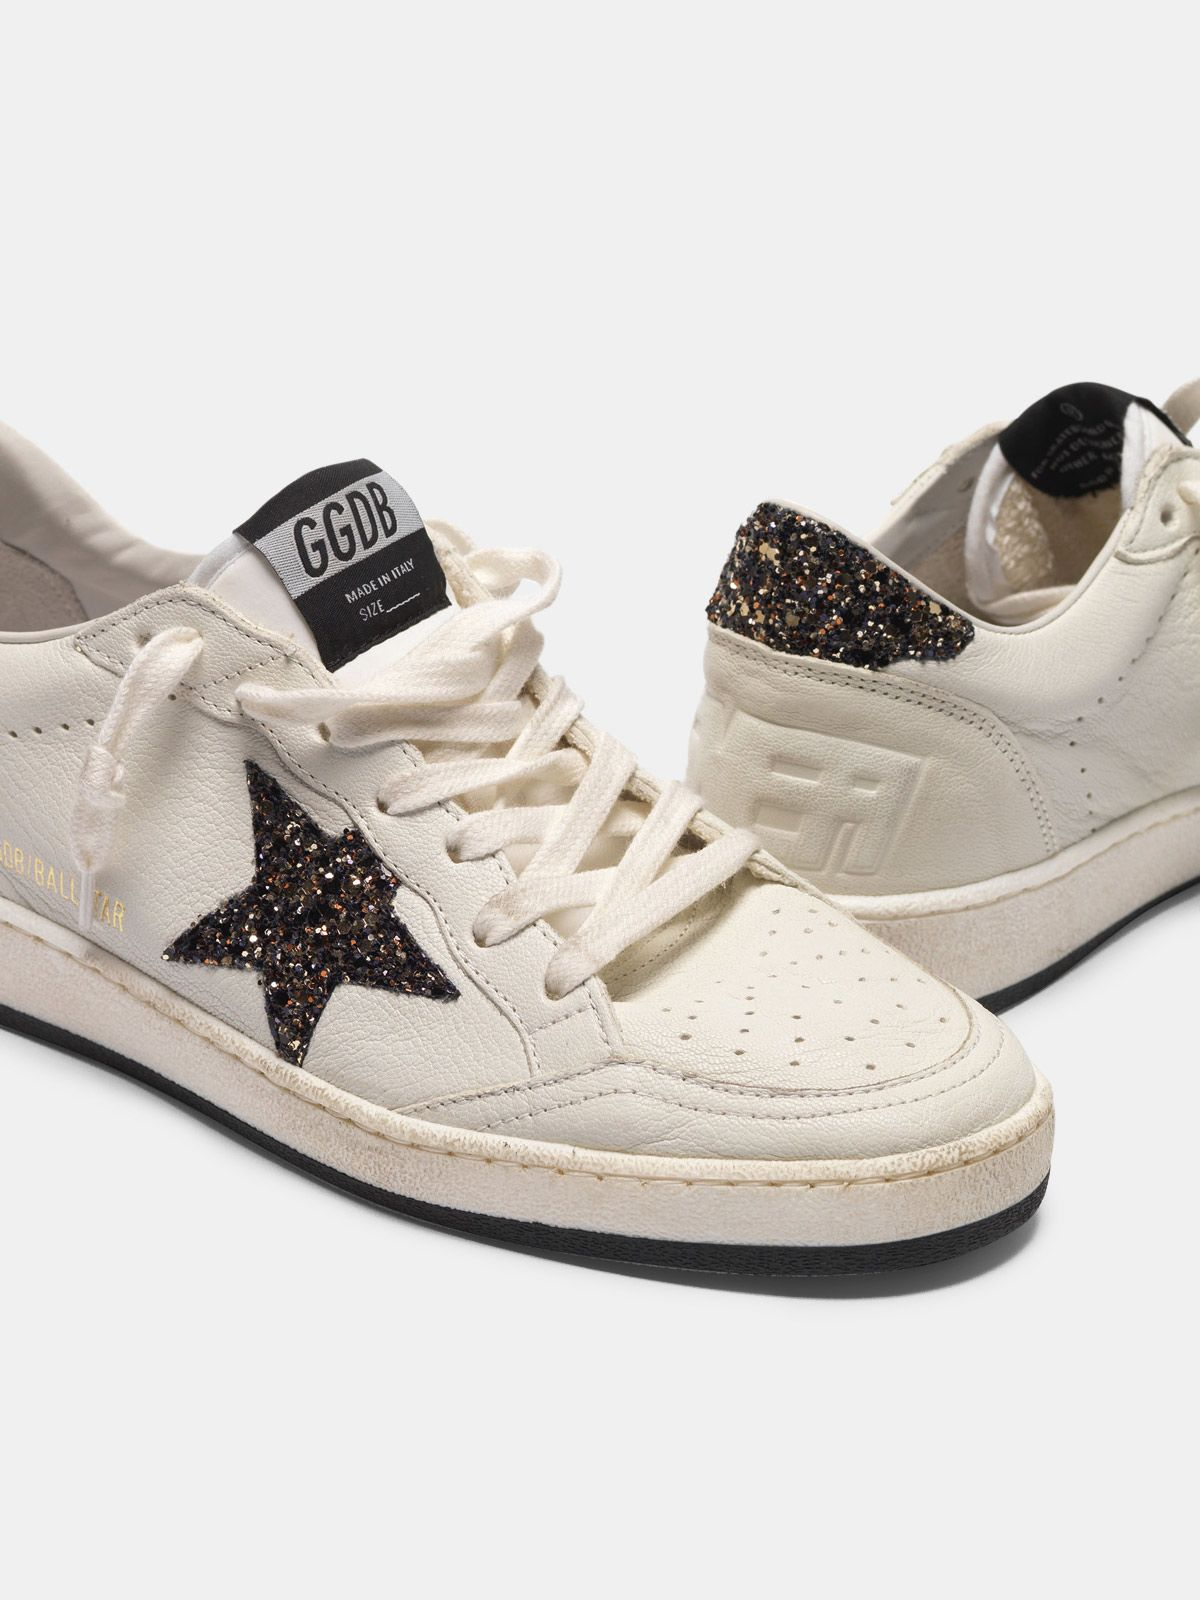 Golden Goose - Sneakers Ball Star con stella GGDB e talloncino in glitter in